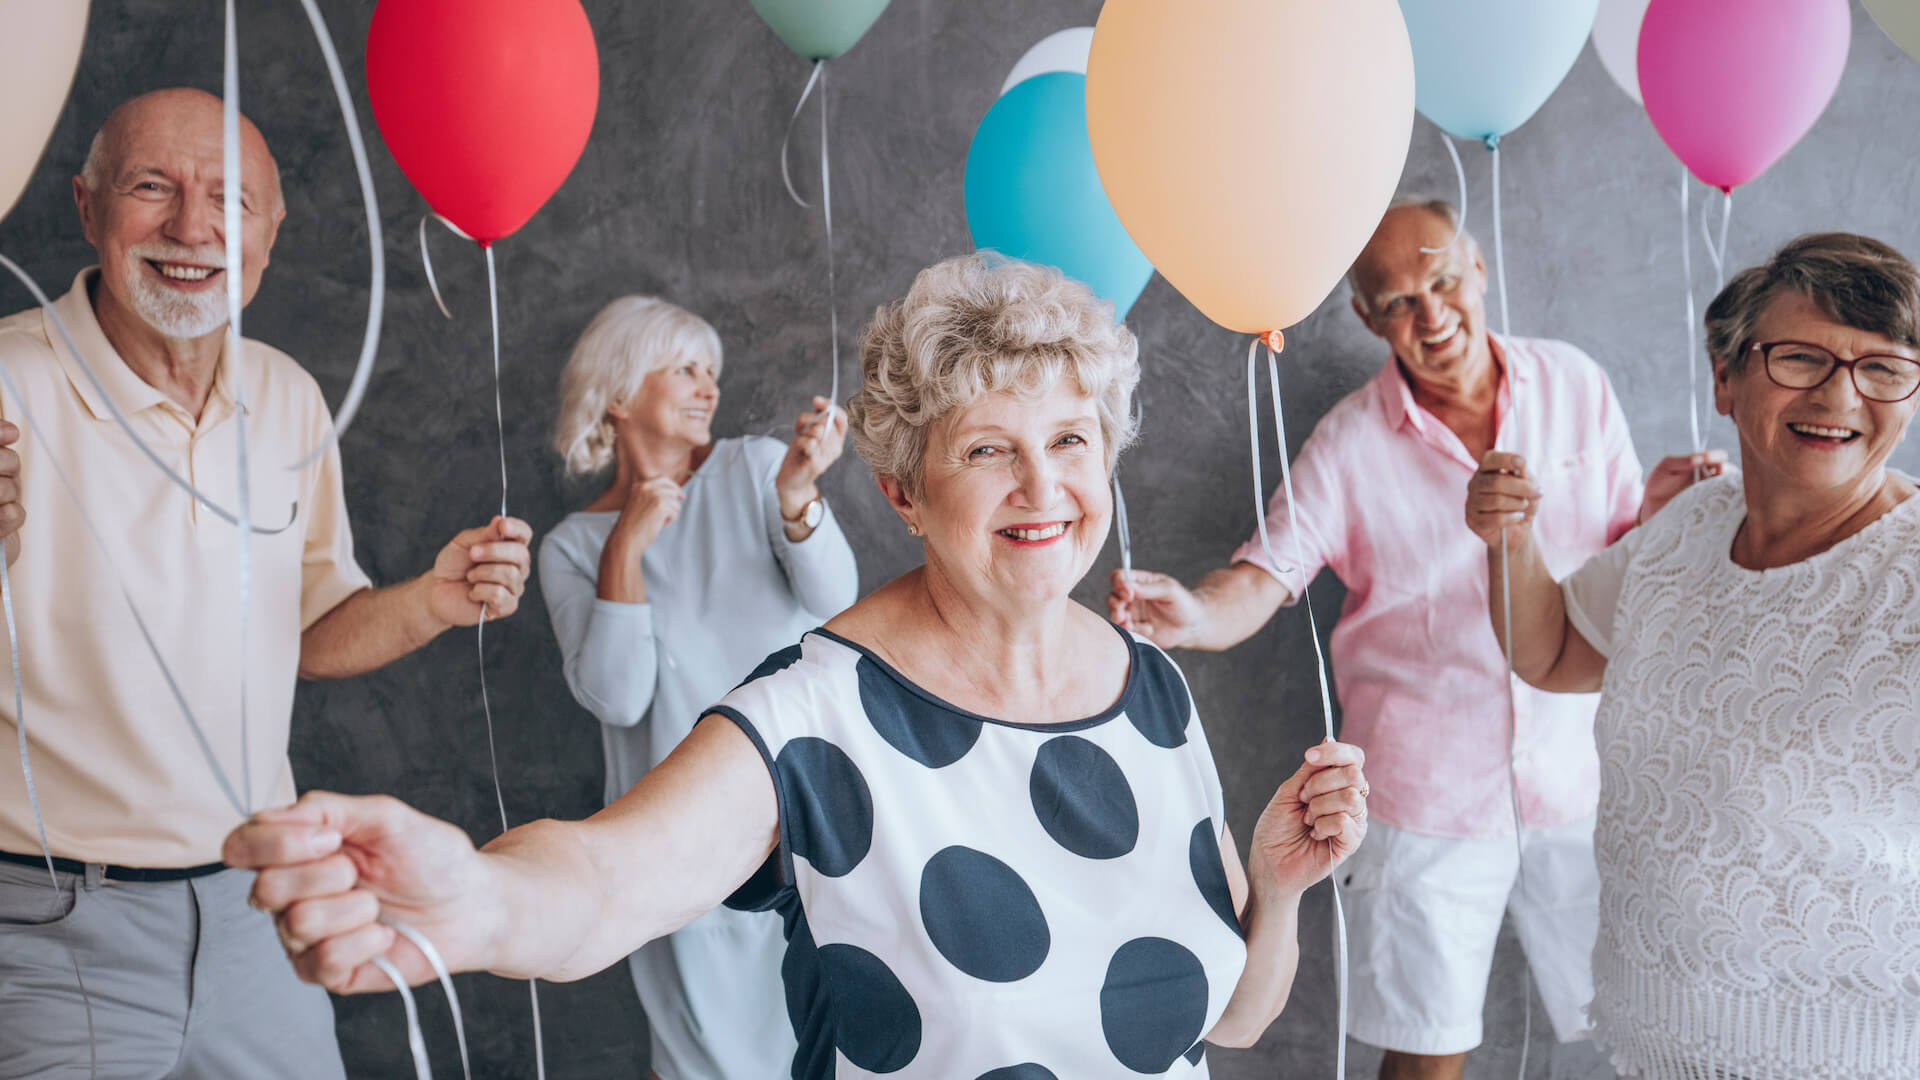 Smiling grandmother wearing a blouse with black dots during New Year's Eve party with friends holding colorful balloons